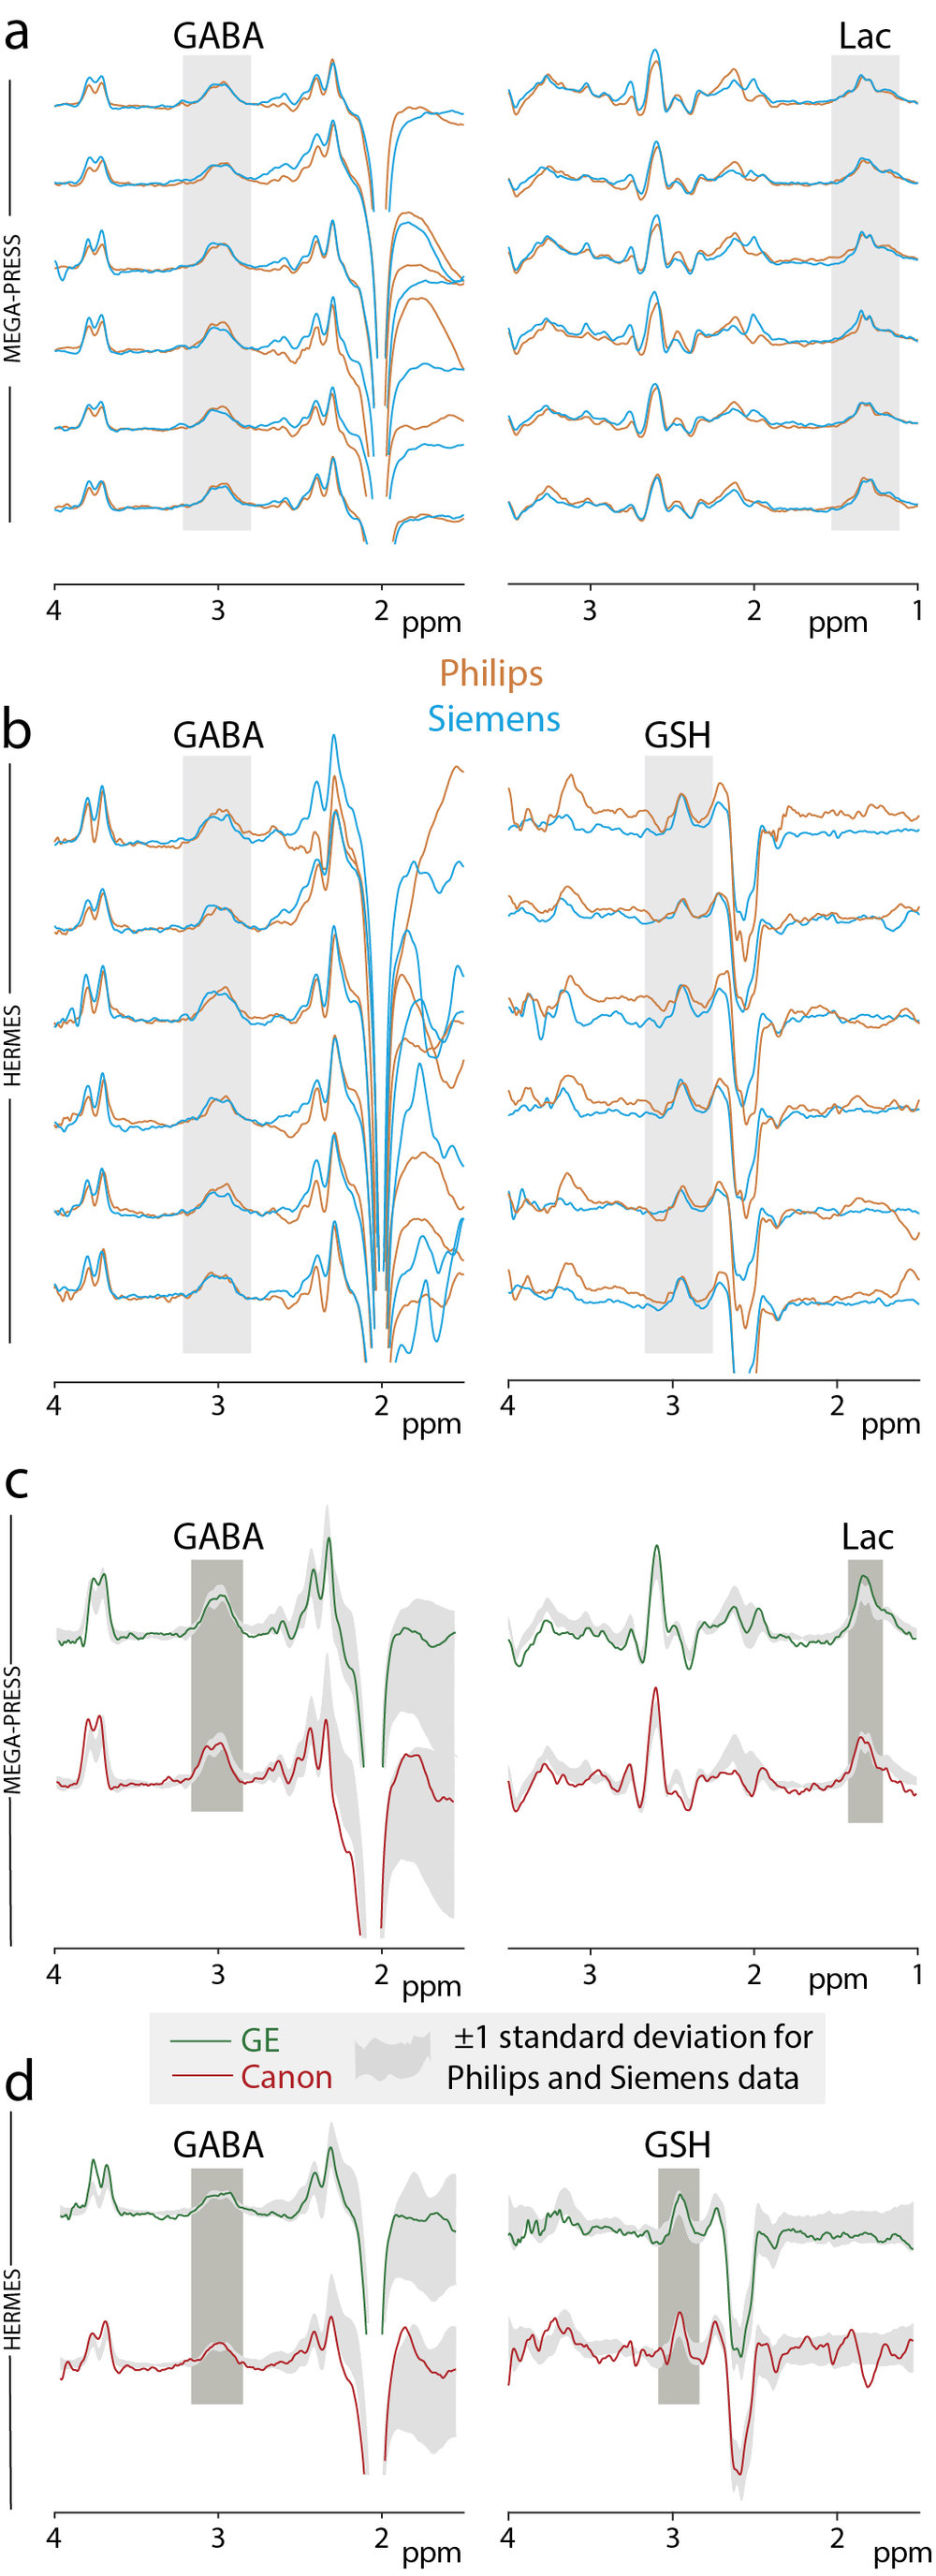 Figure 4:  In vivo experiments using the universal sequence. Spectra acquired on Philips and Siemens scanners are overlaid for each subject: a) MEGA-PRESS GABA (TE = 68 ms) and Lac (TE = 140 ms) spectra; b) GABA- and GSH-edited HERMES spectra. In vivo experiments using the universal sequence for GE (green) and Canon (red) scanners: c) MEGA-PRESS GABA-edited (TE = 68 ms) and Lac-edited (TE = 140 ms) spectra; d) GABA- and GSH-edited HERMES spectra. Spectra acquired are overlaid on the ± 1SD range (in gray) of the amalgamated Philips and Siemens data (6 subjects).